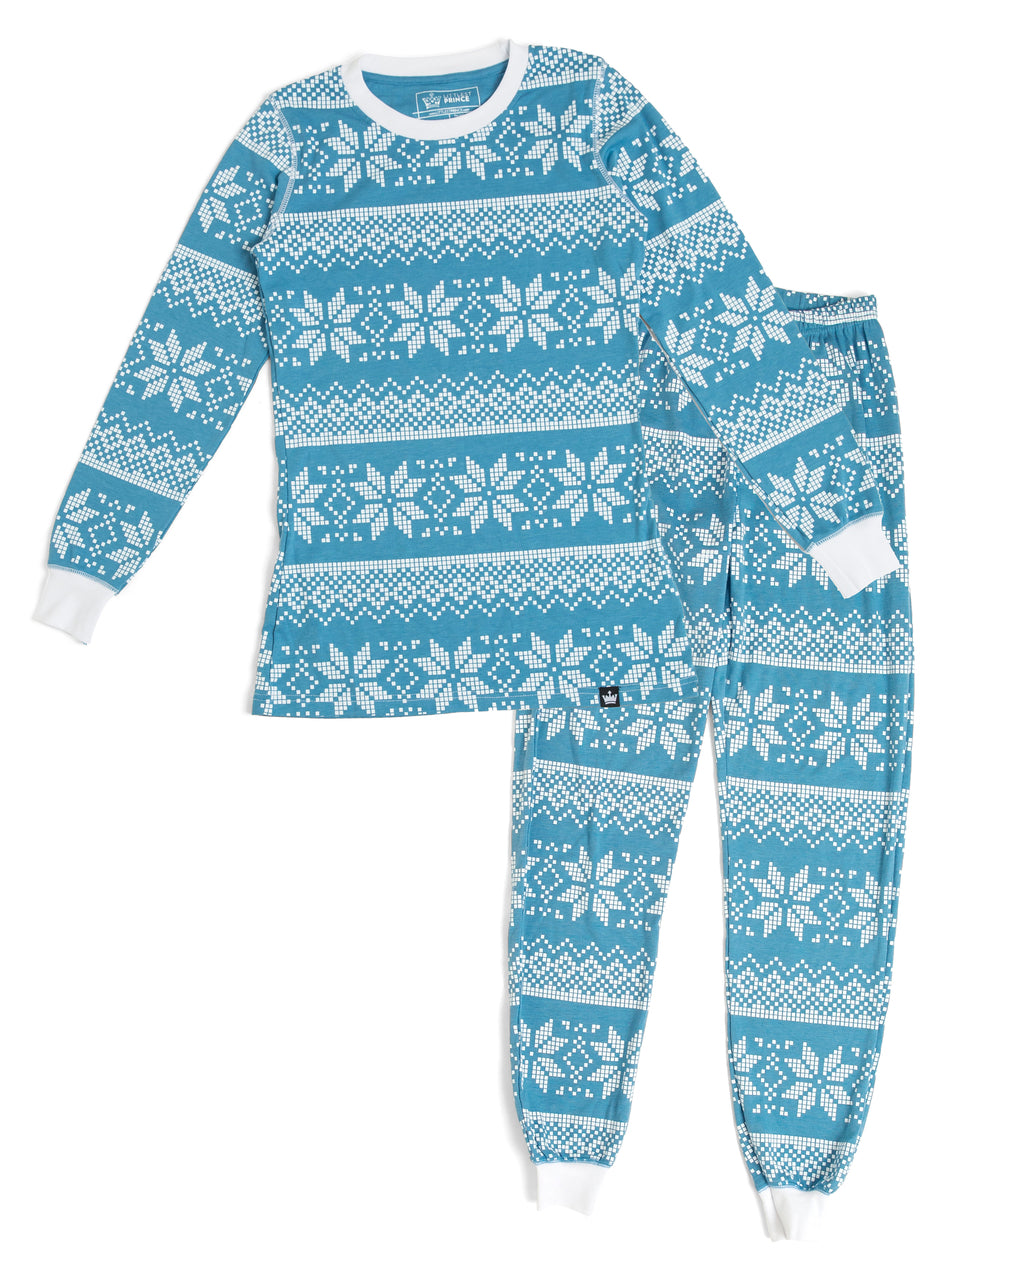 99d218e7fc Blue Snowflake Women s Pajama Full Set  Matching Family Pajamas  – Twinsies  Rock